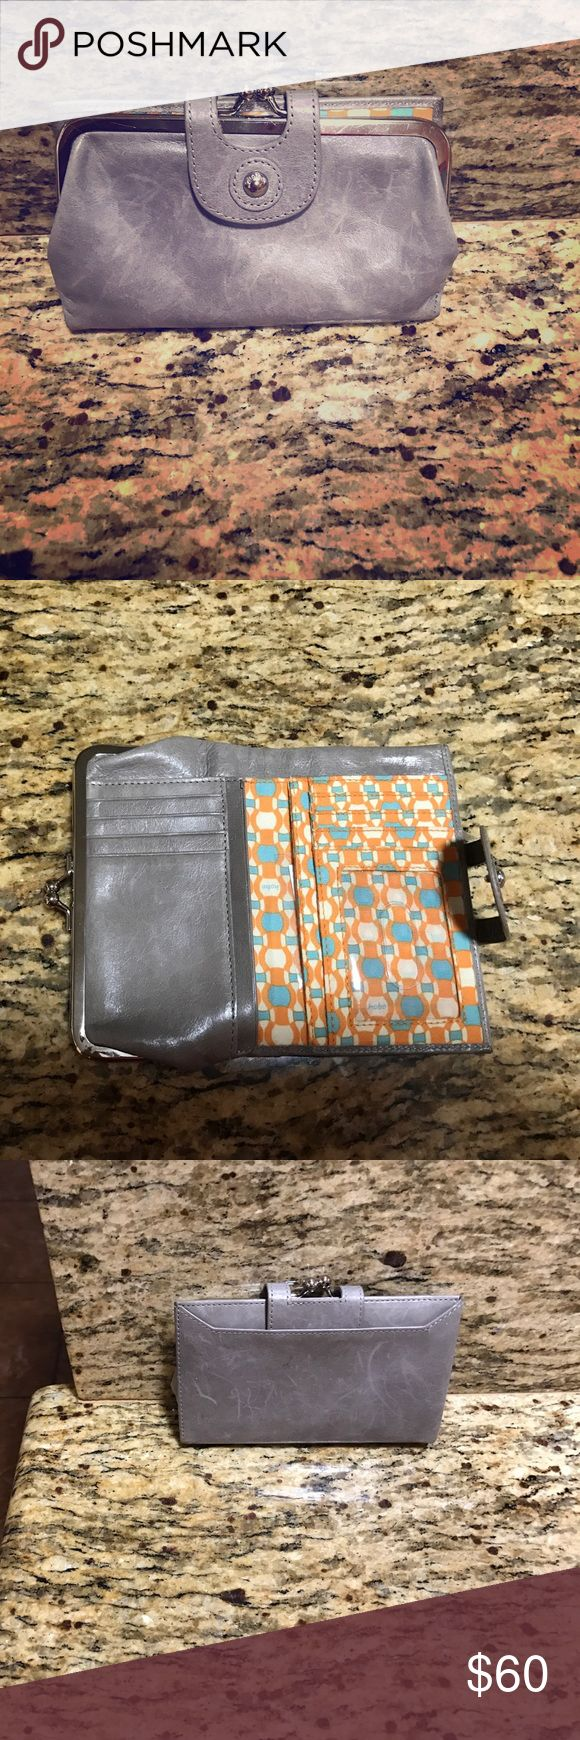 """Hobo brand wallet Gray Hobo """"Alice"""" leather wallet.  6""""Wx3 1/2""""Hx1""""D.  Kiss lock coin purse, exterior slip, interior slip and currency pockets, 7 card slot, and ID window.  Used for about a week and haven't used since. HOBO Bags Wallets"""